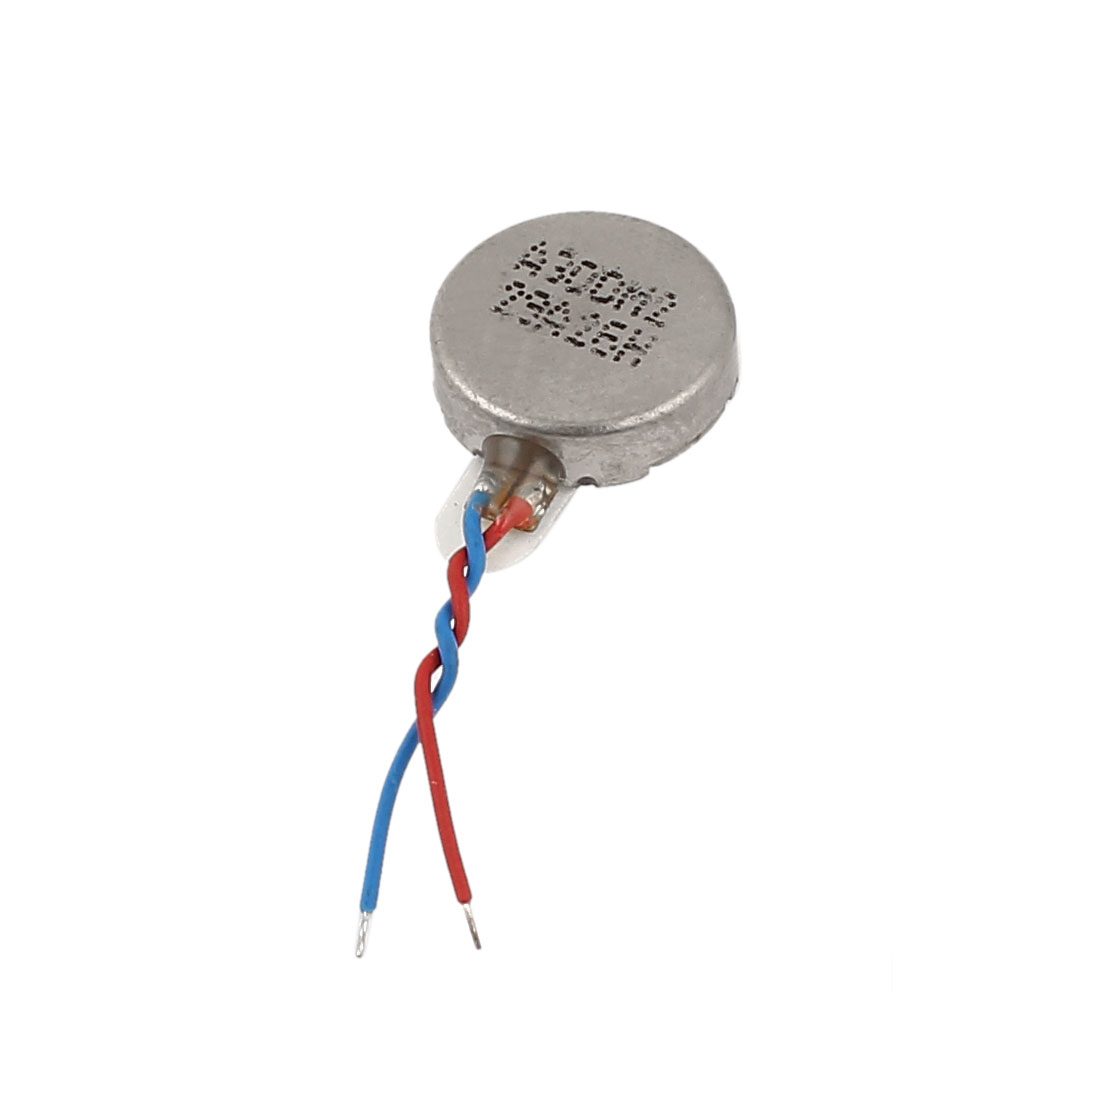 10mmx3mm Flat Button Vibrating Vibration Motor DC 2.5-3.5V 12000RPM for Cellphone